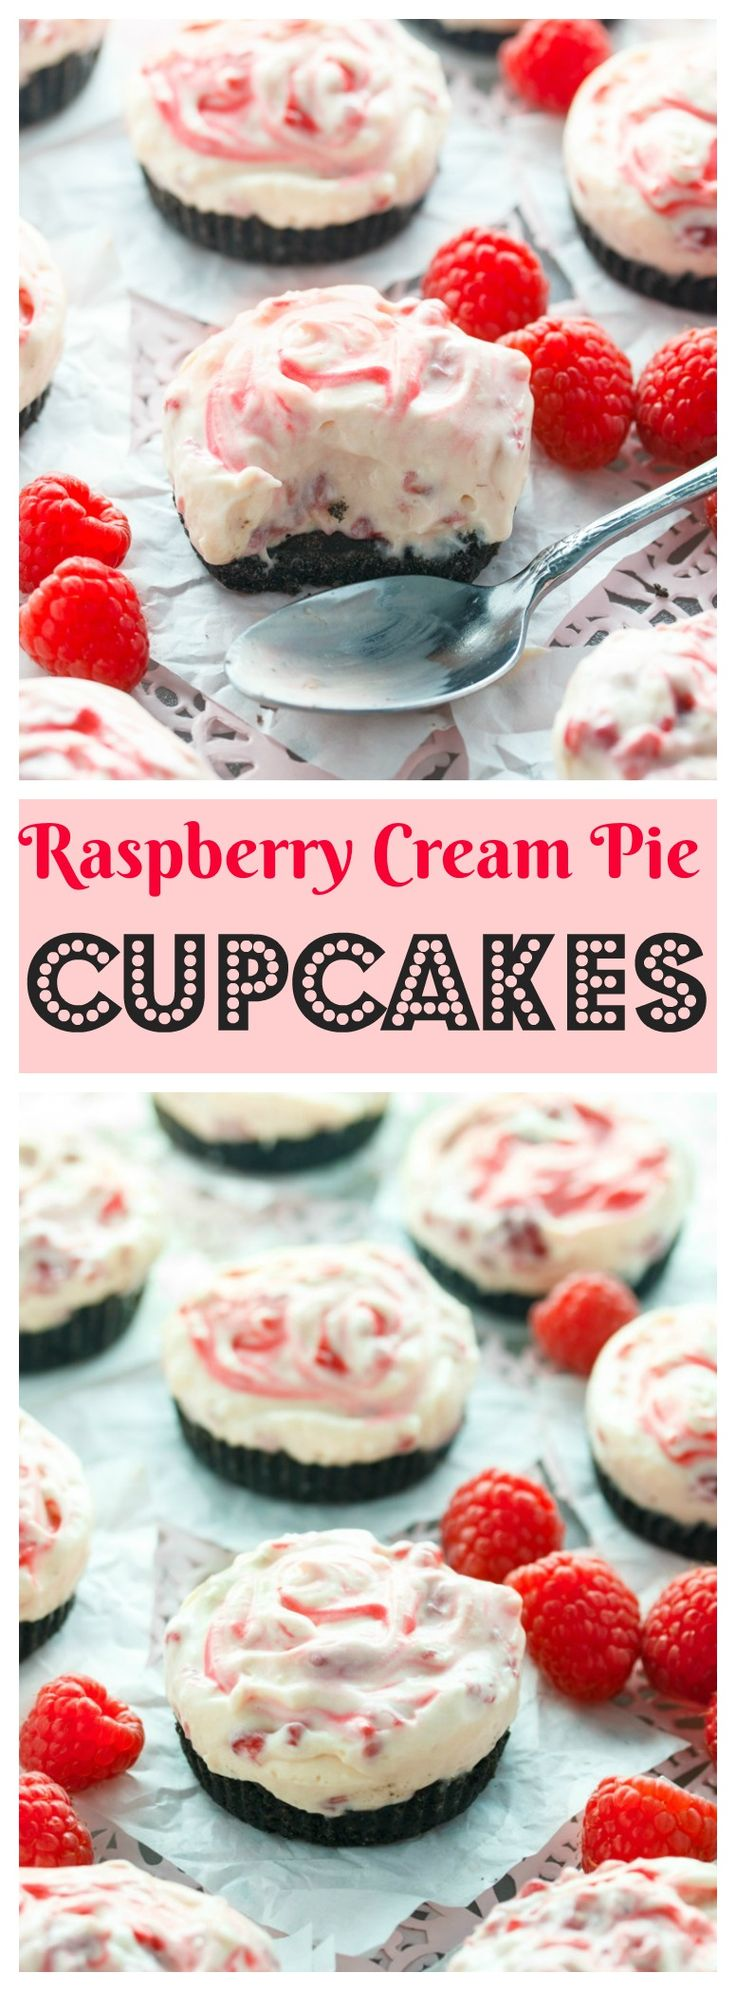 Buttery chocolate crust topped with a sweet and creamy raspberry-swirled filling. This colorful dessert is perfect served as a single pie or as cupcakes!